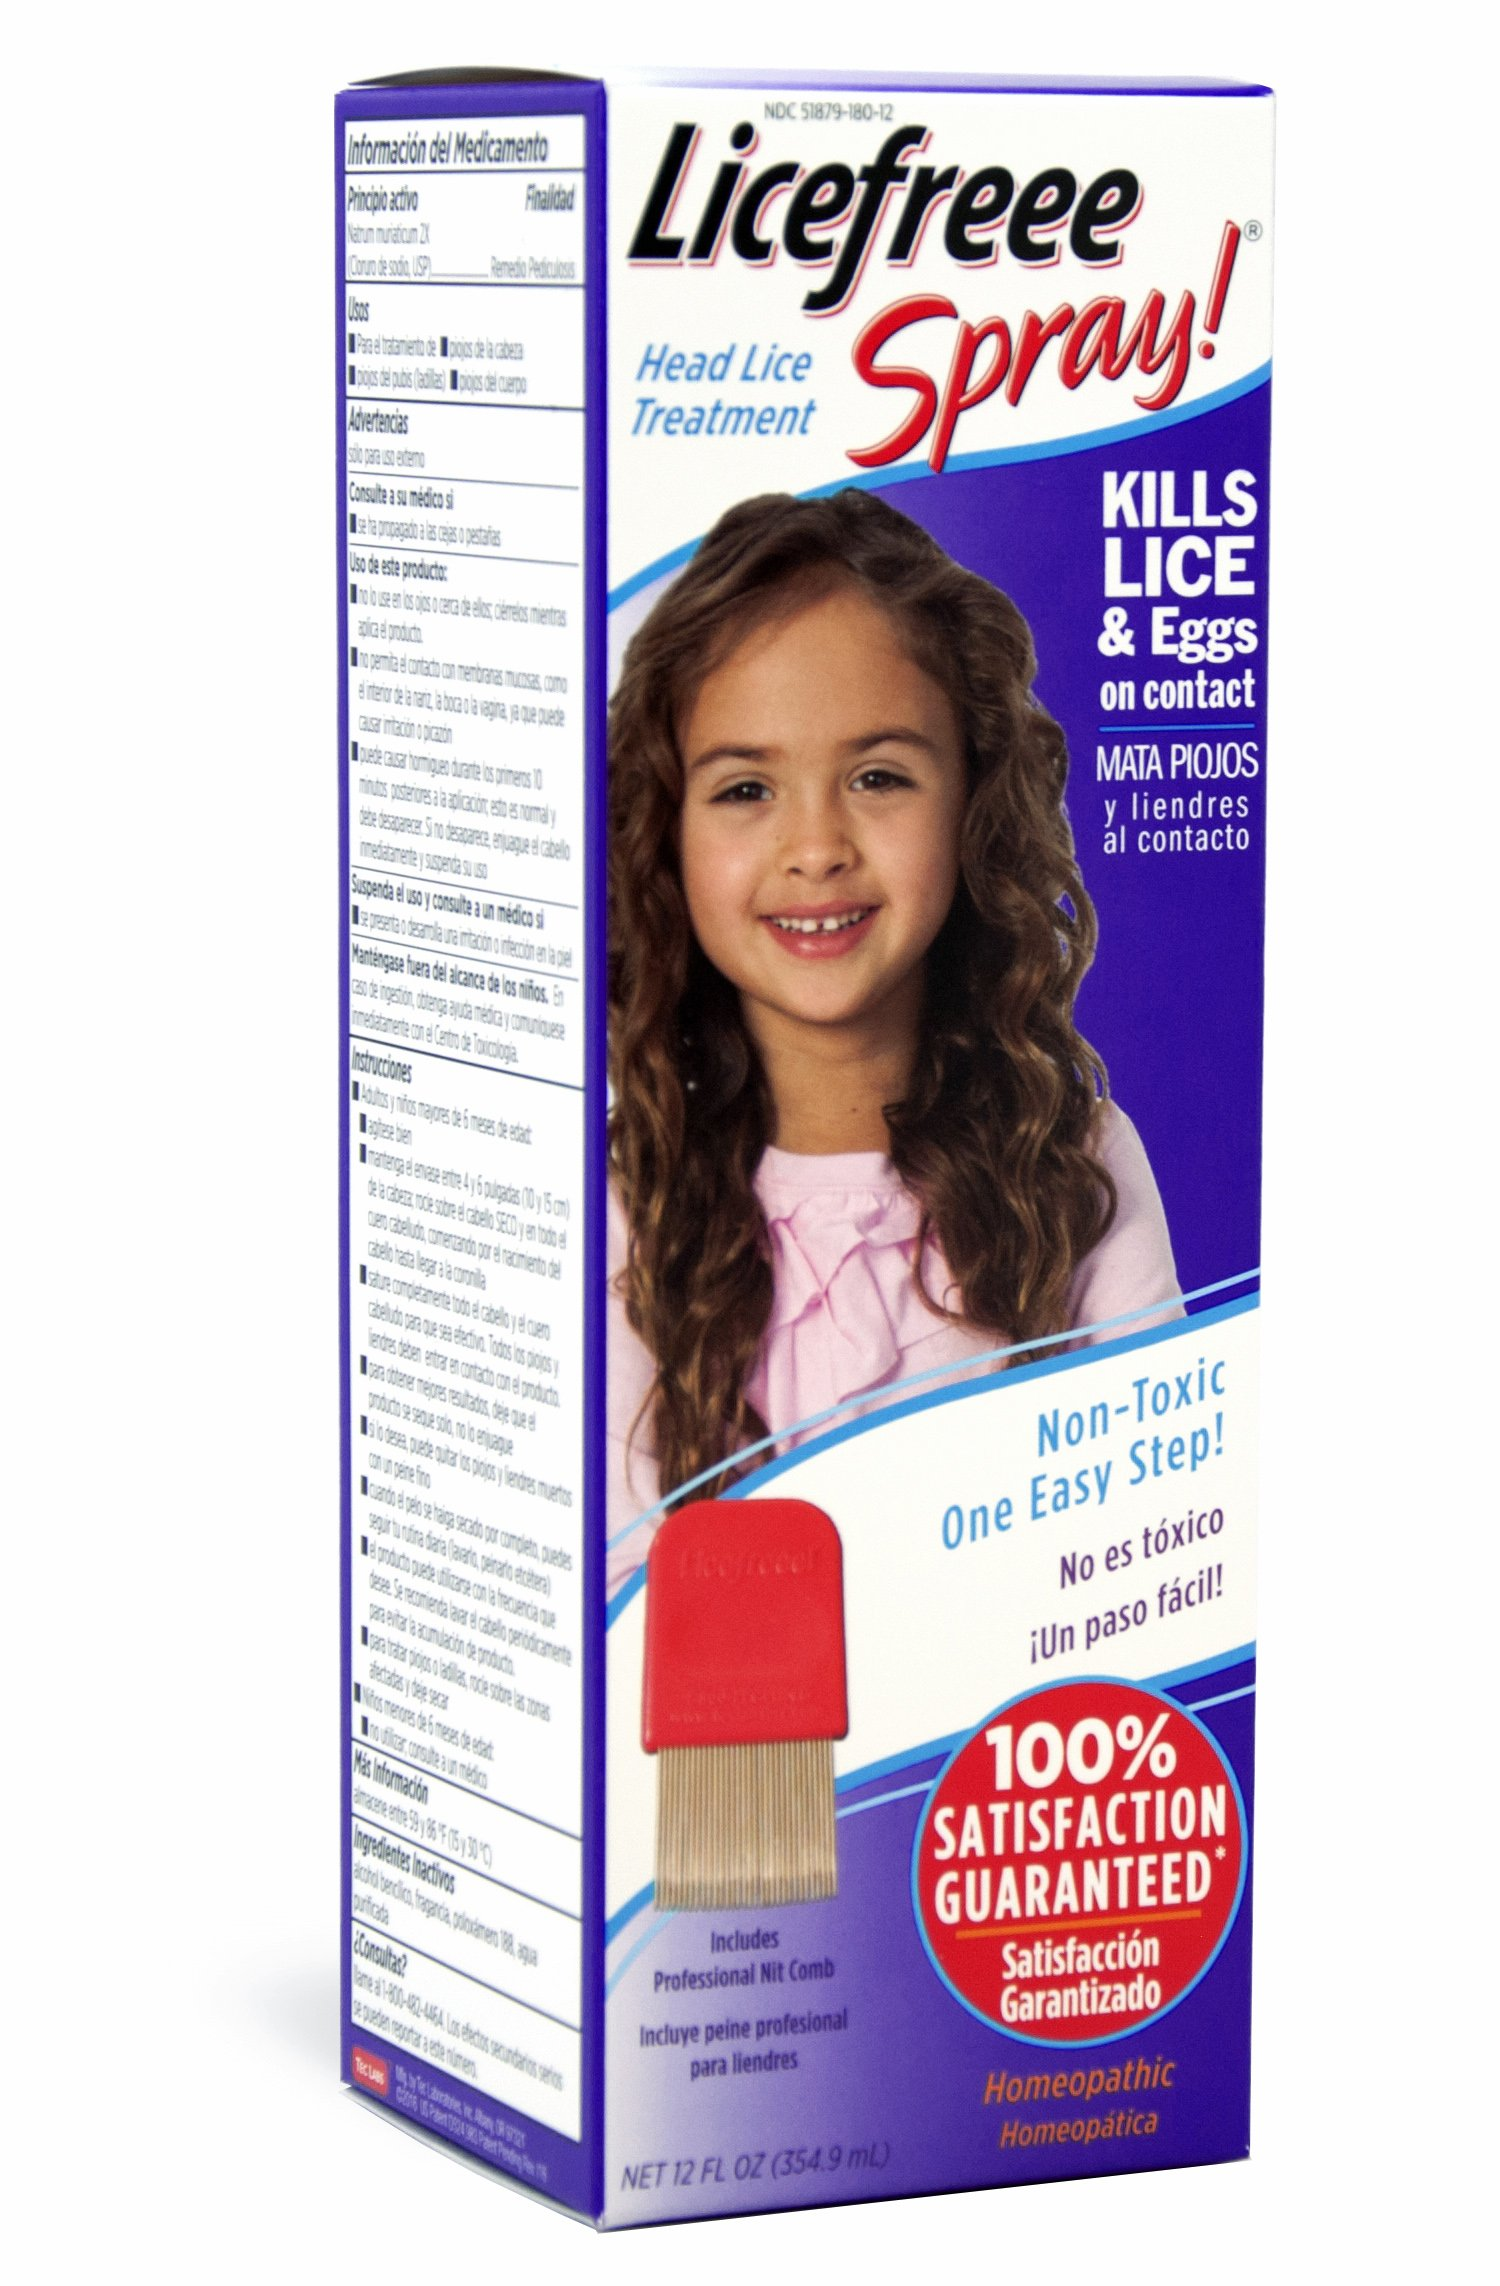 Licefreee Spray Large Family Size Head Lice Treatment (Kills Lice and Eggs on Contact) Includes Professional Metal Nit Comb, 12 Fluid Ounce